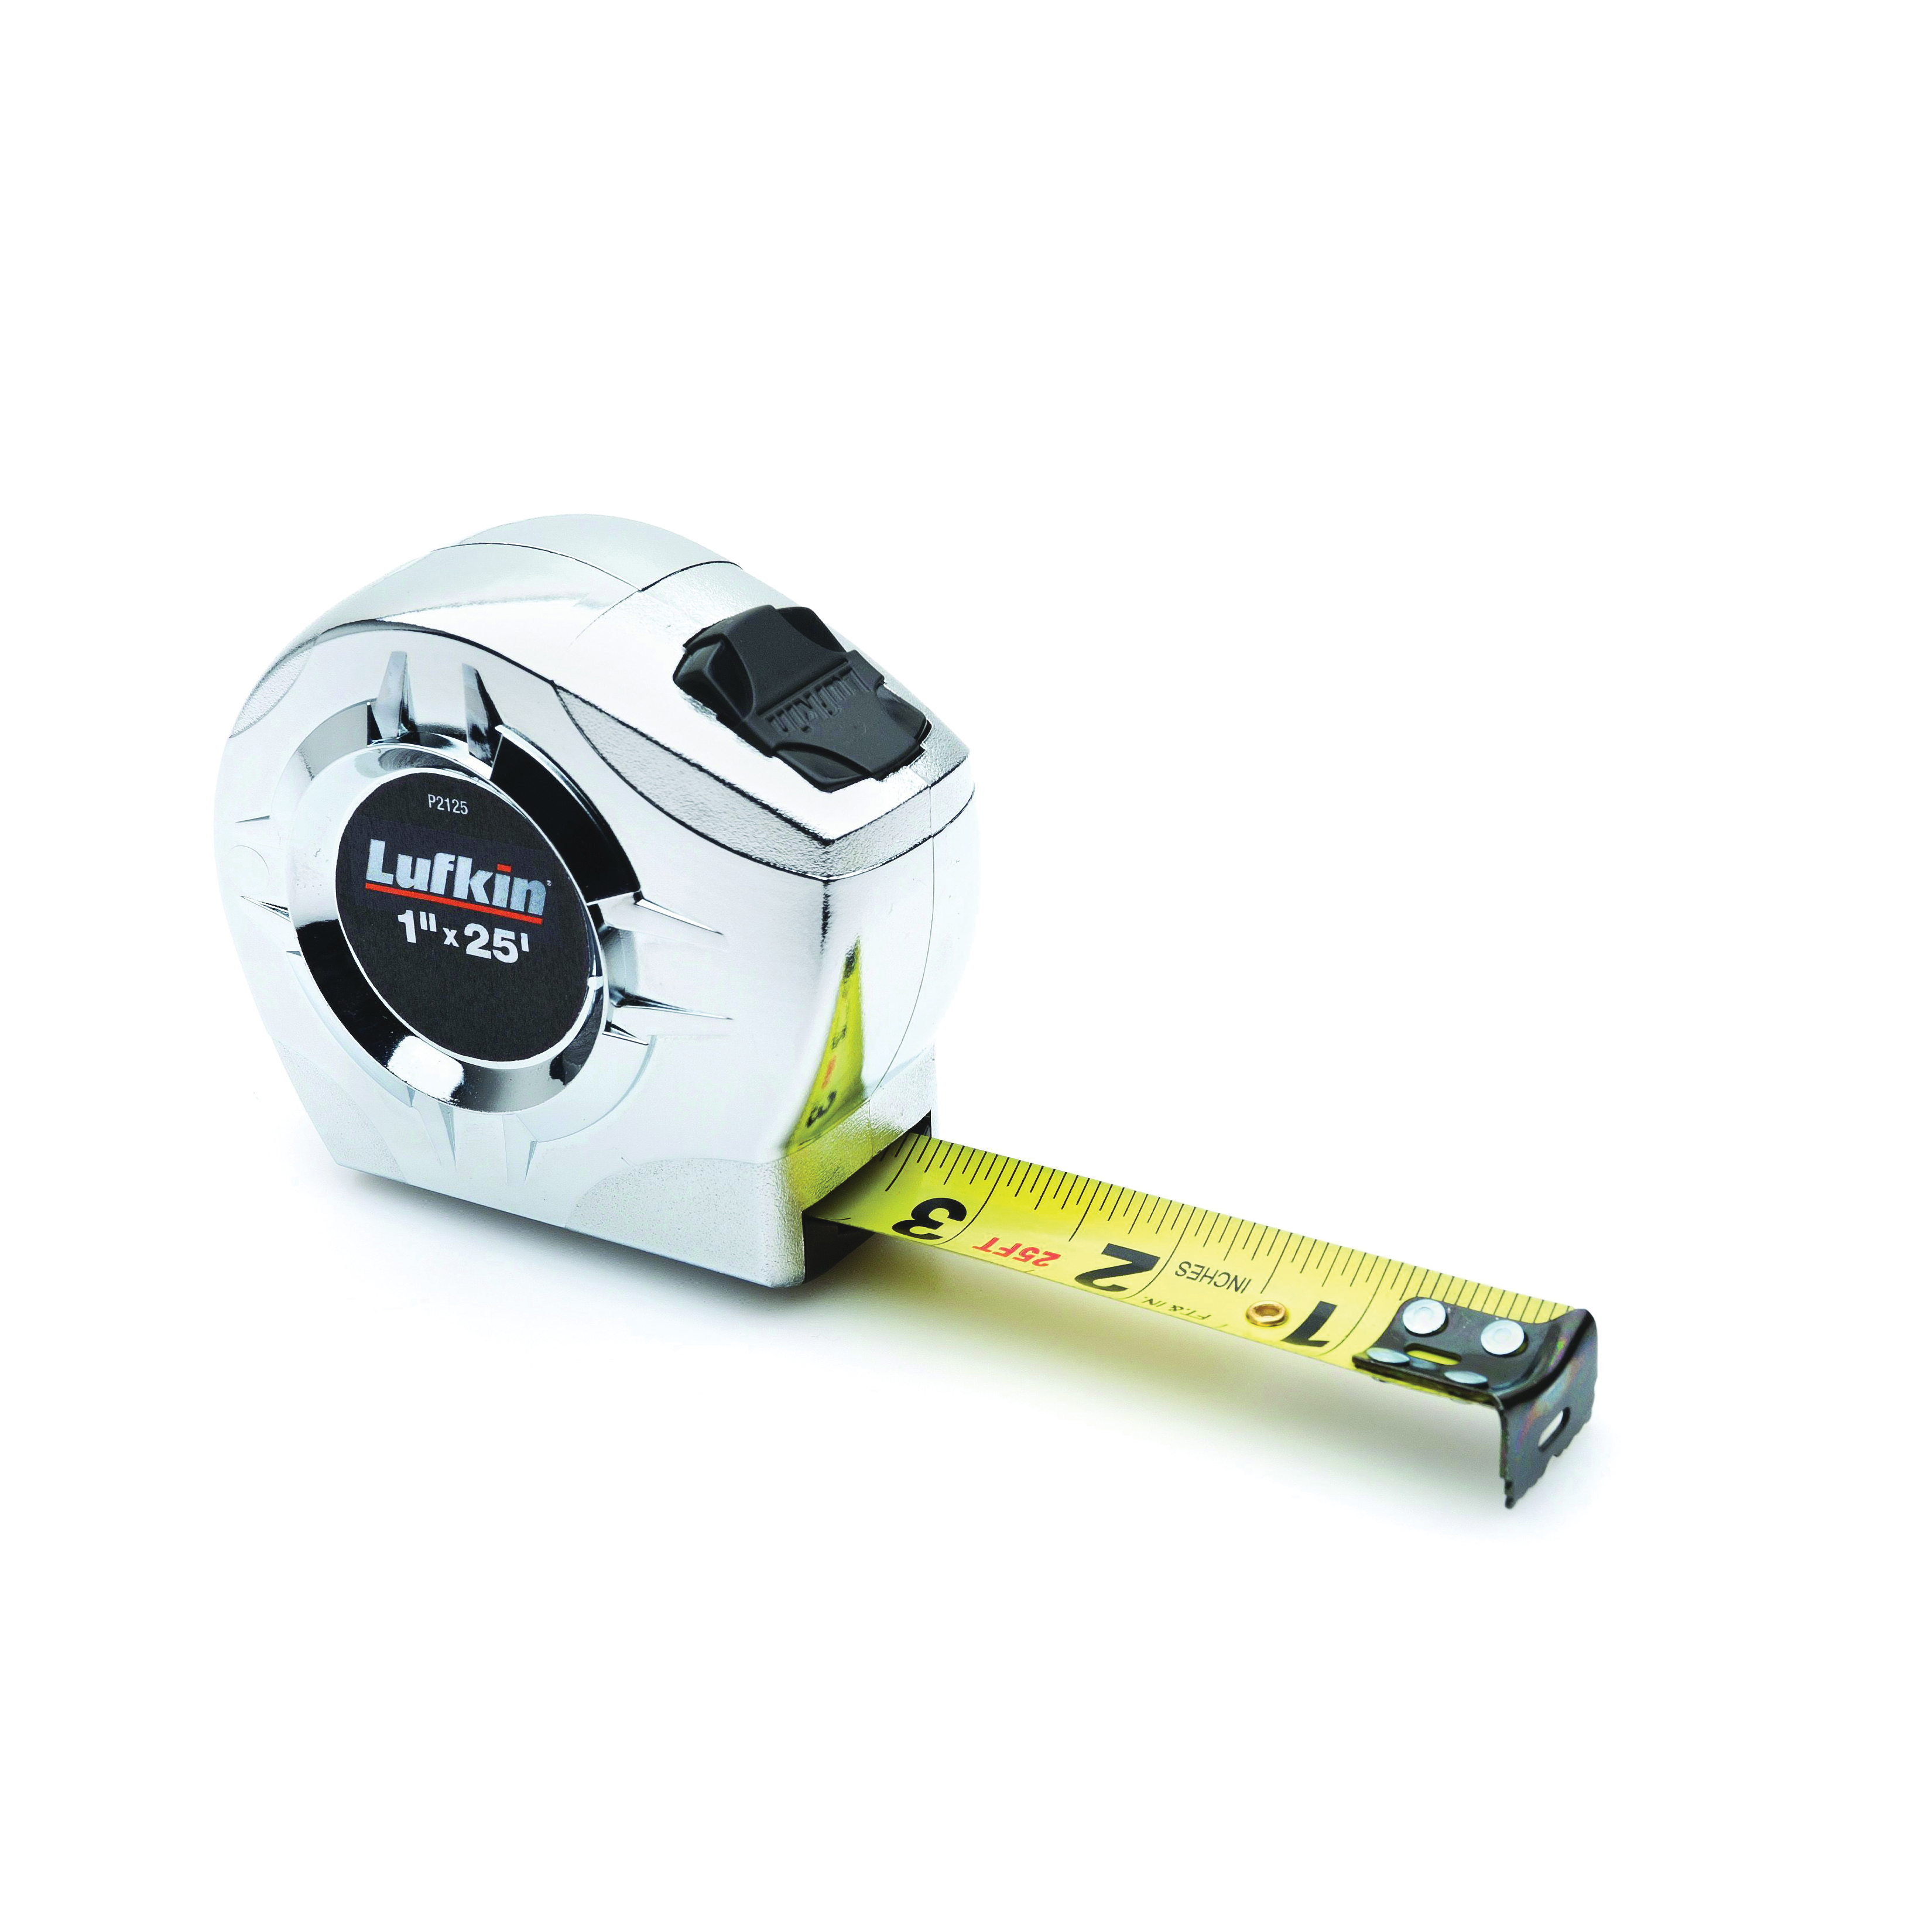 Picture of Crescent Lufkin P2125N Tape Measure, 25 ft L Blade, 1 in W Blade, Steel Blade, Chrome Case